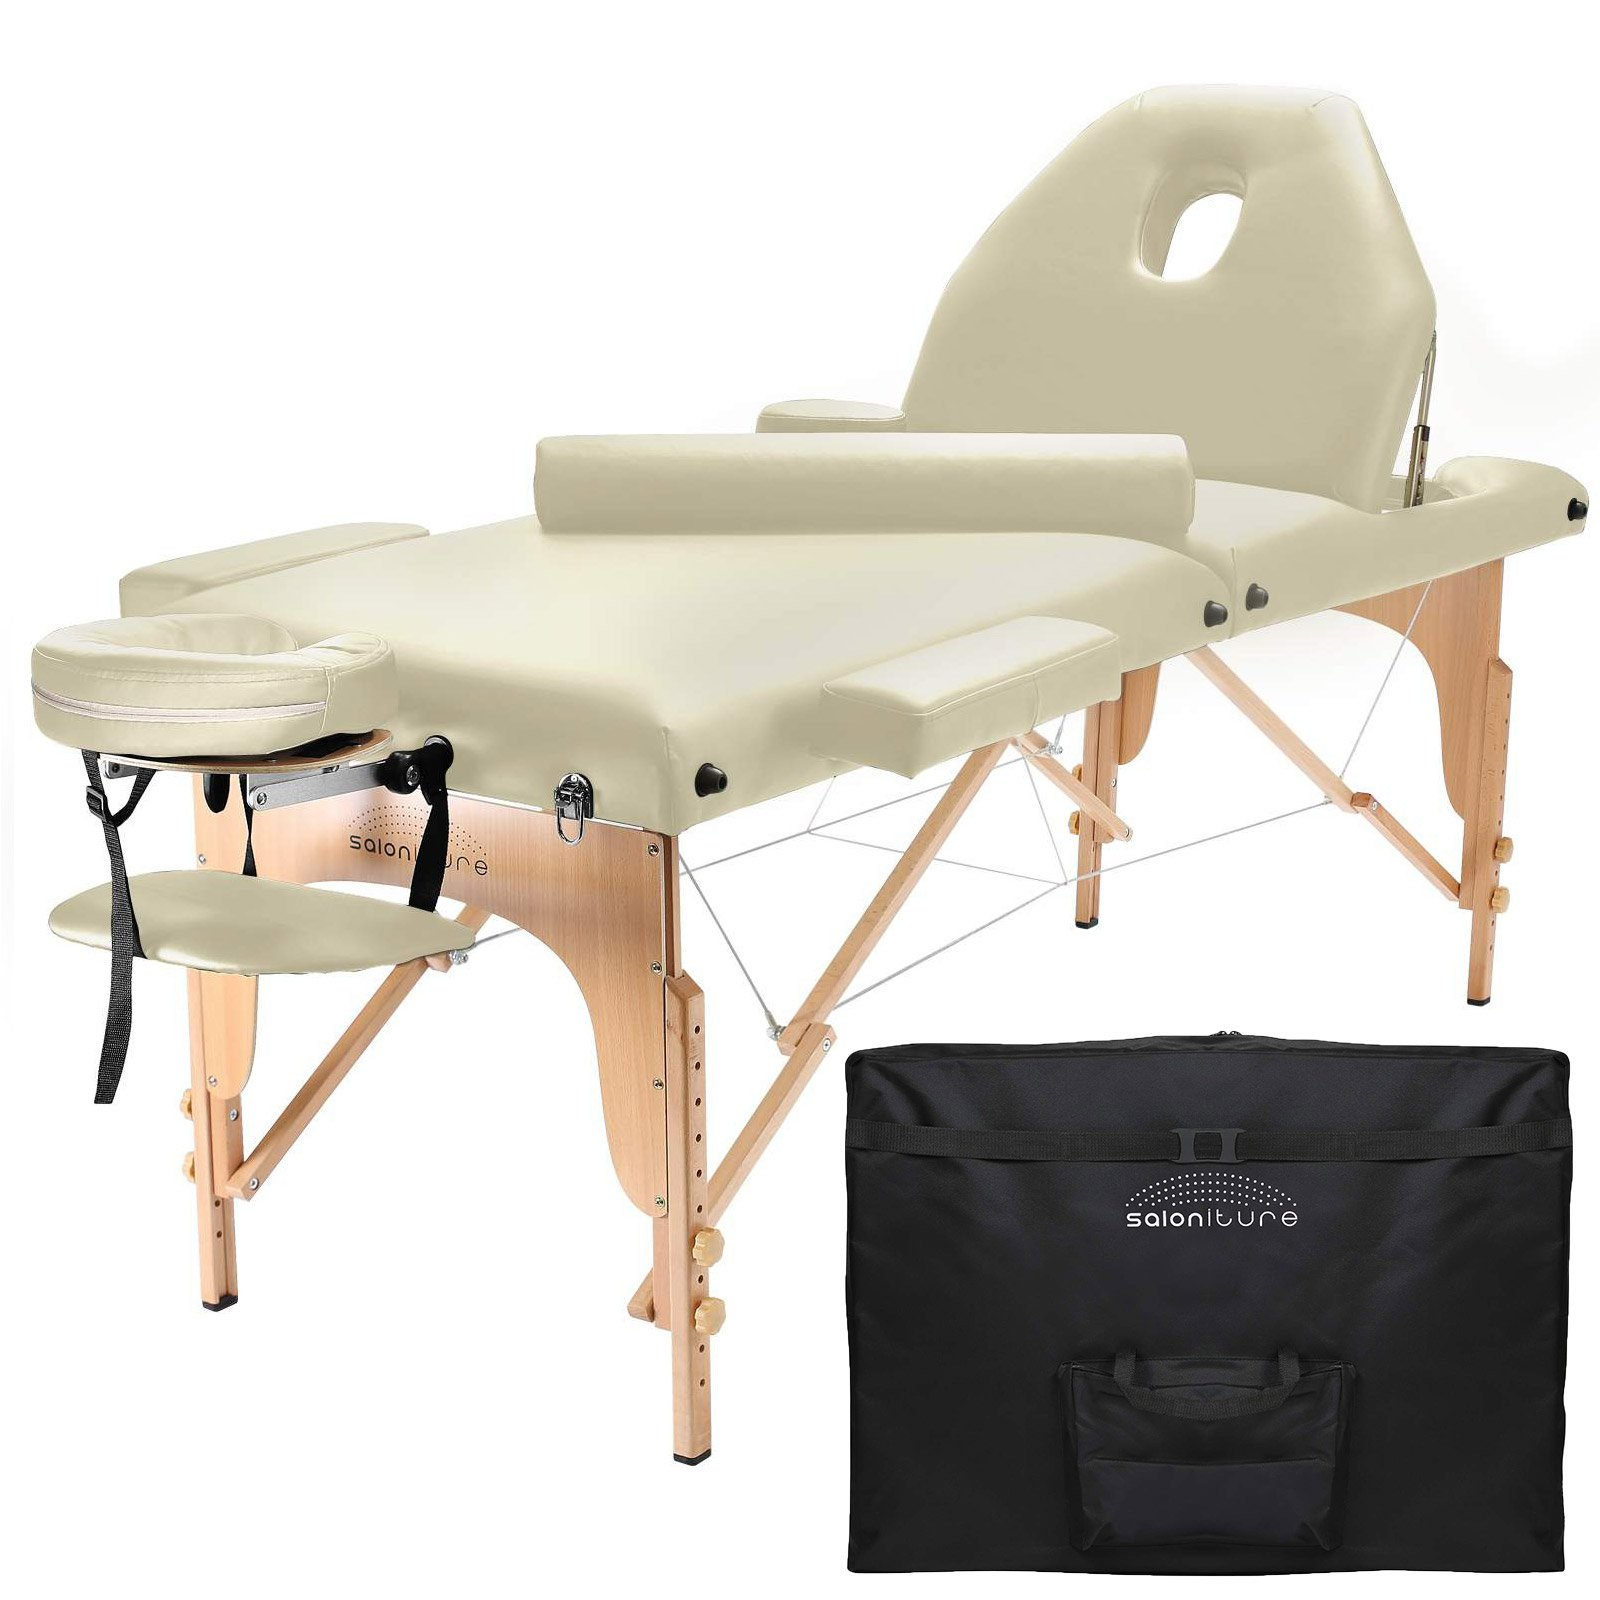 Saloniture Professional Portable Massage Table with Backrest - Cream by Saloniture (Image #1)